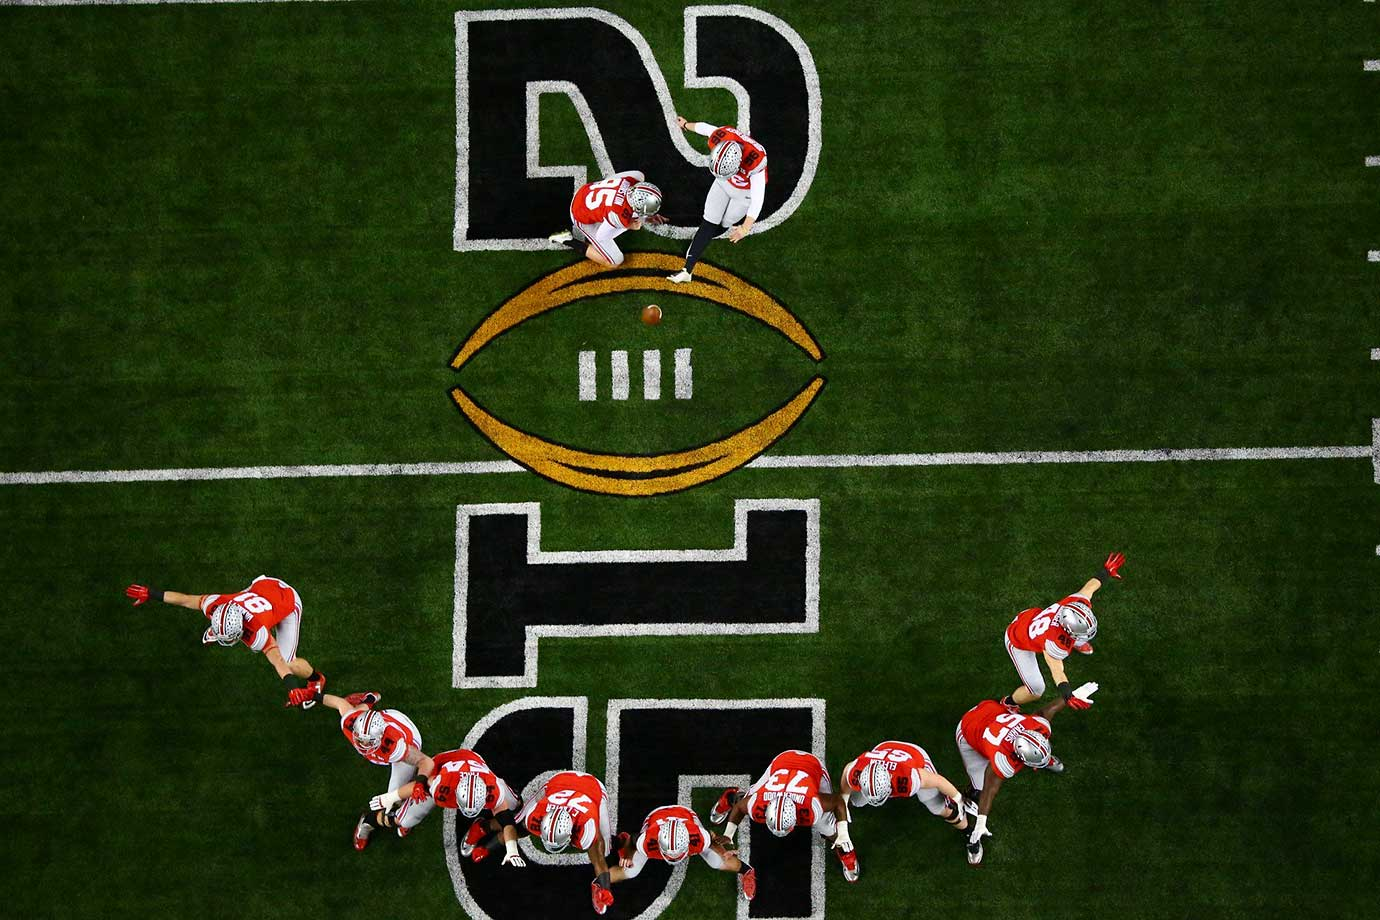 Ohio State's field goal team during the 2015 national championship game at AT&T Stadium in Arlington, Texas.